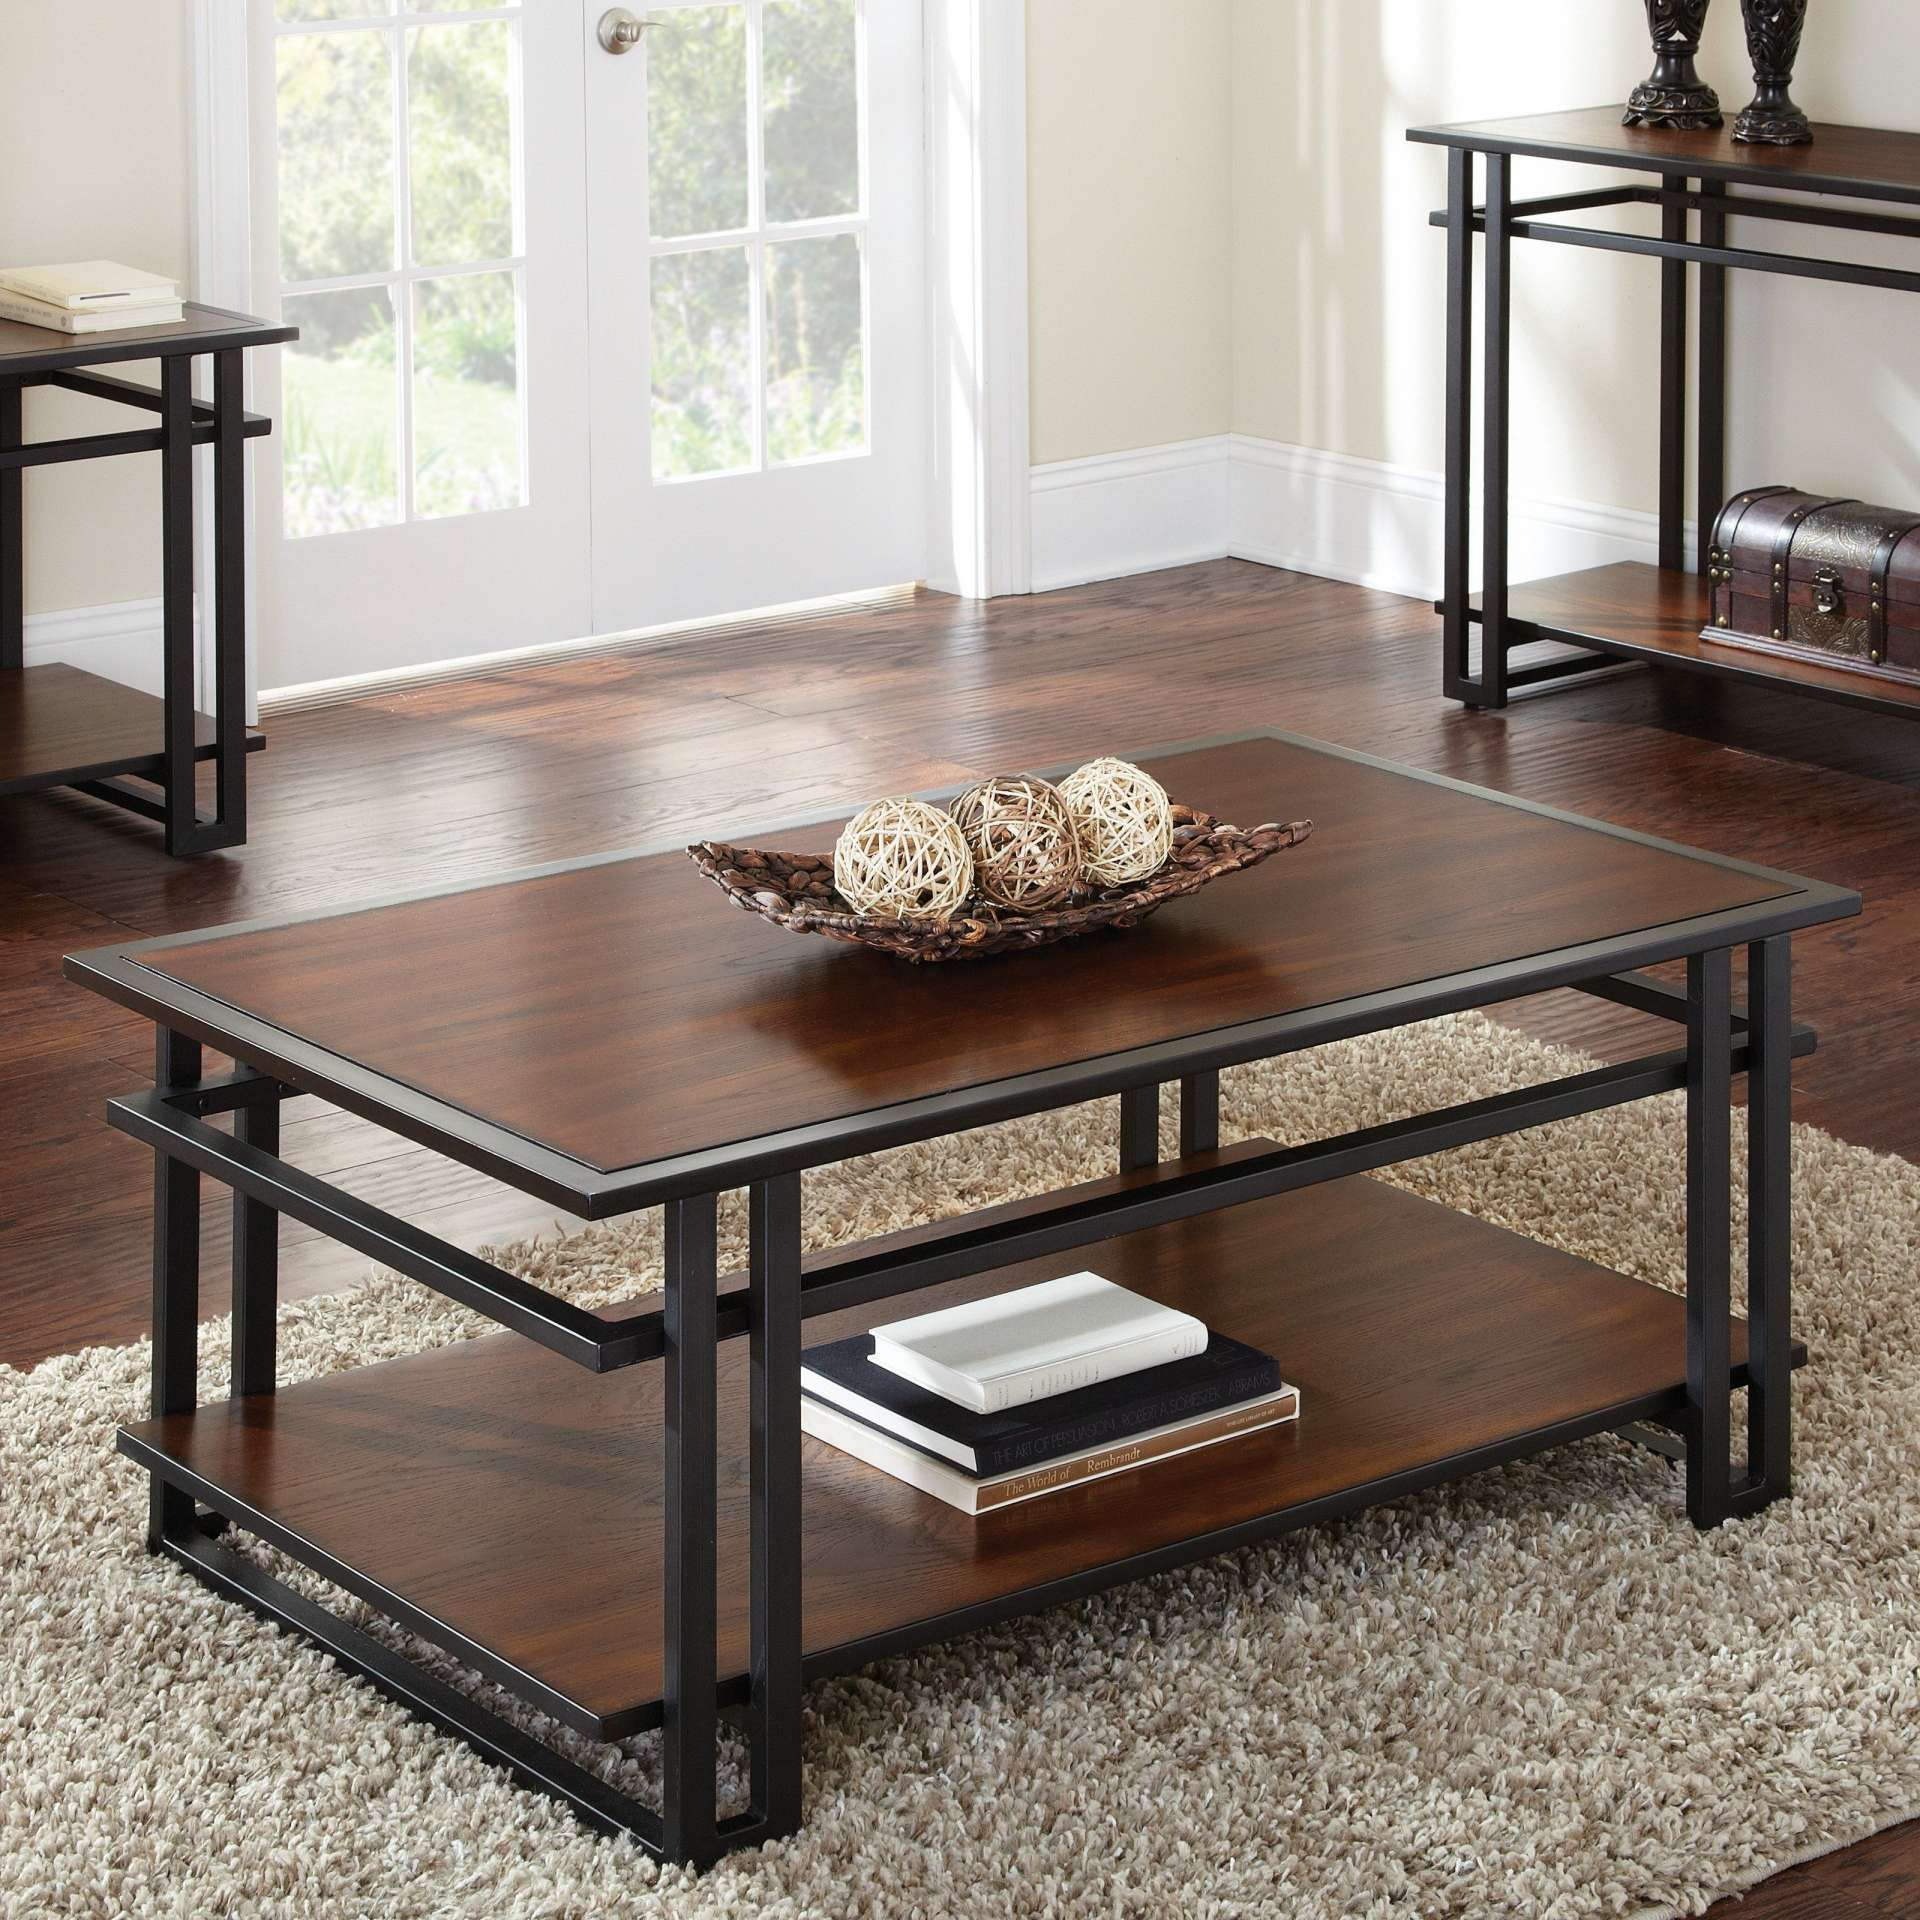 Best 7 Exceptional Cherry Wood Coffee Table And End Tables 640 x 480